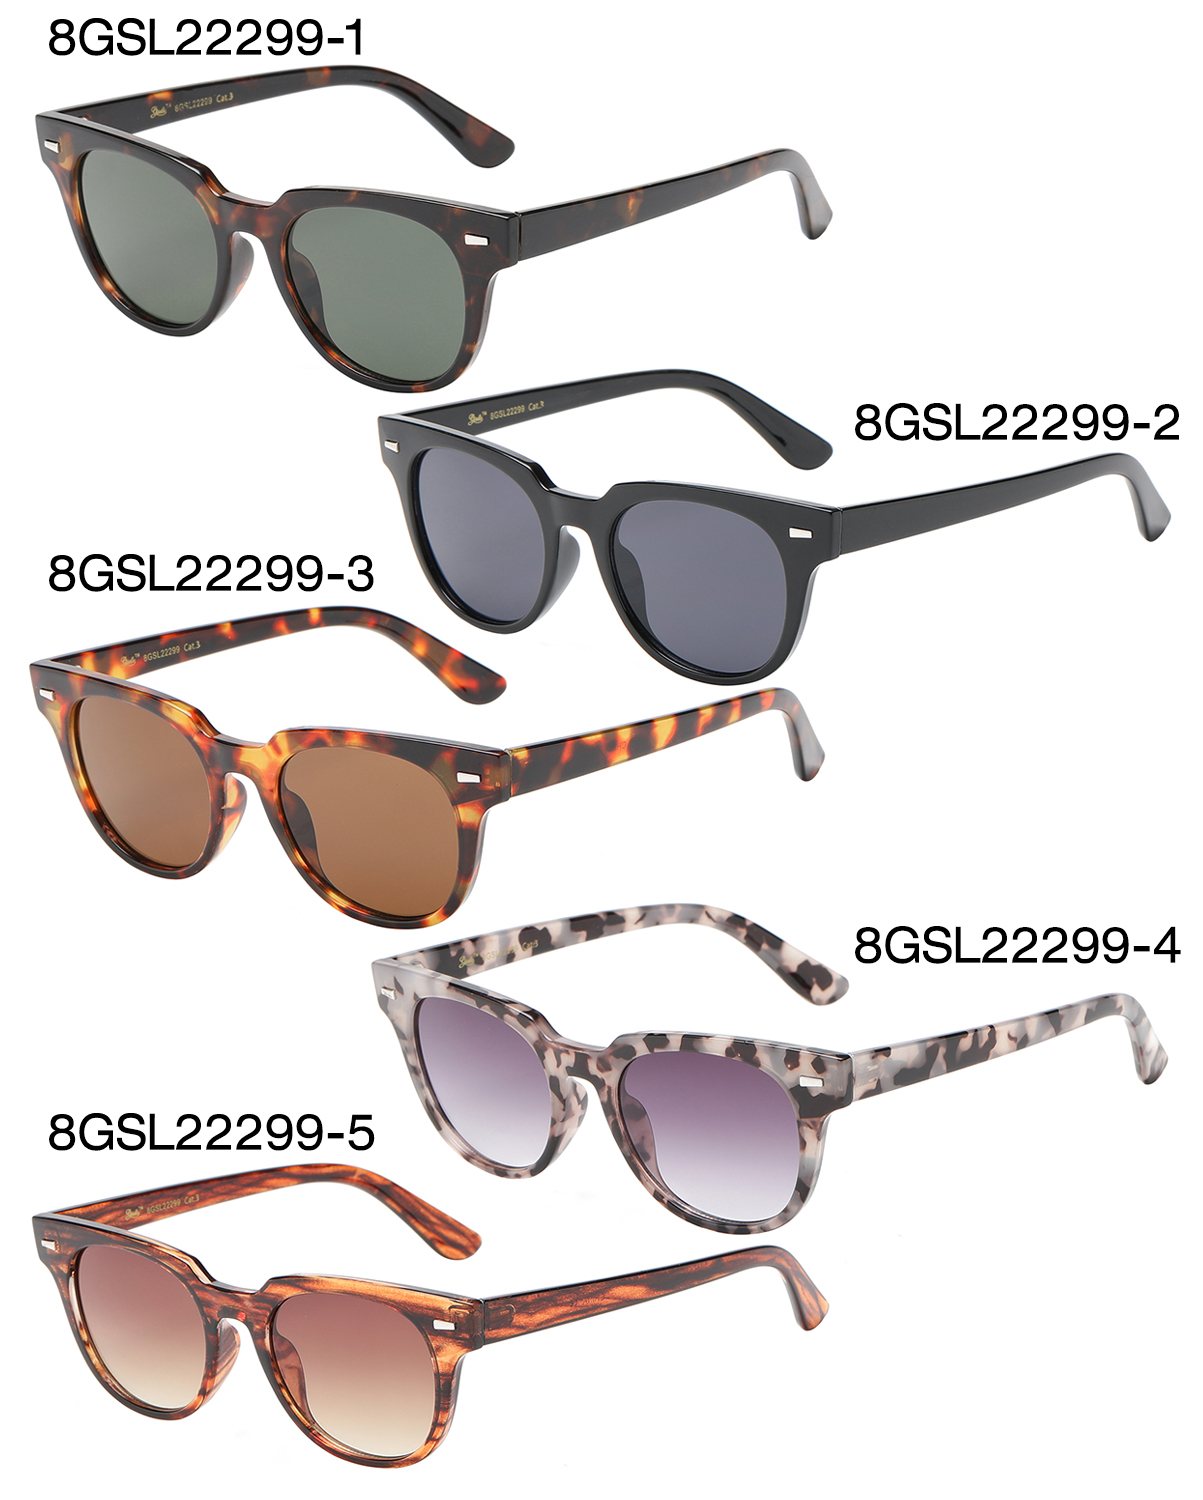 8GSL22299-(SET-12PCS)-wholesale-metal-temple-sunglasses-round-solid-plastic-frame-uva-uvb-colored-lenses-tortoise(0).jpg